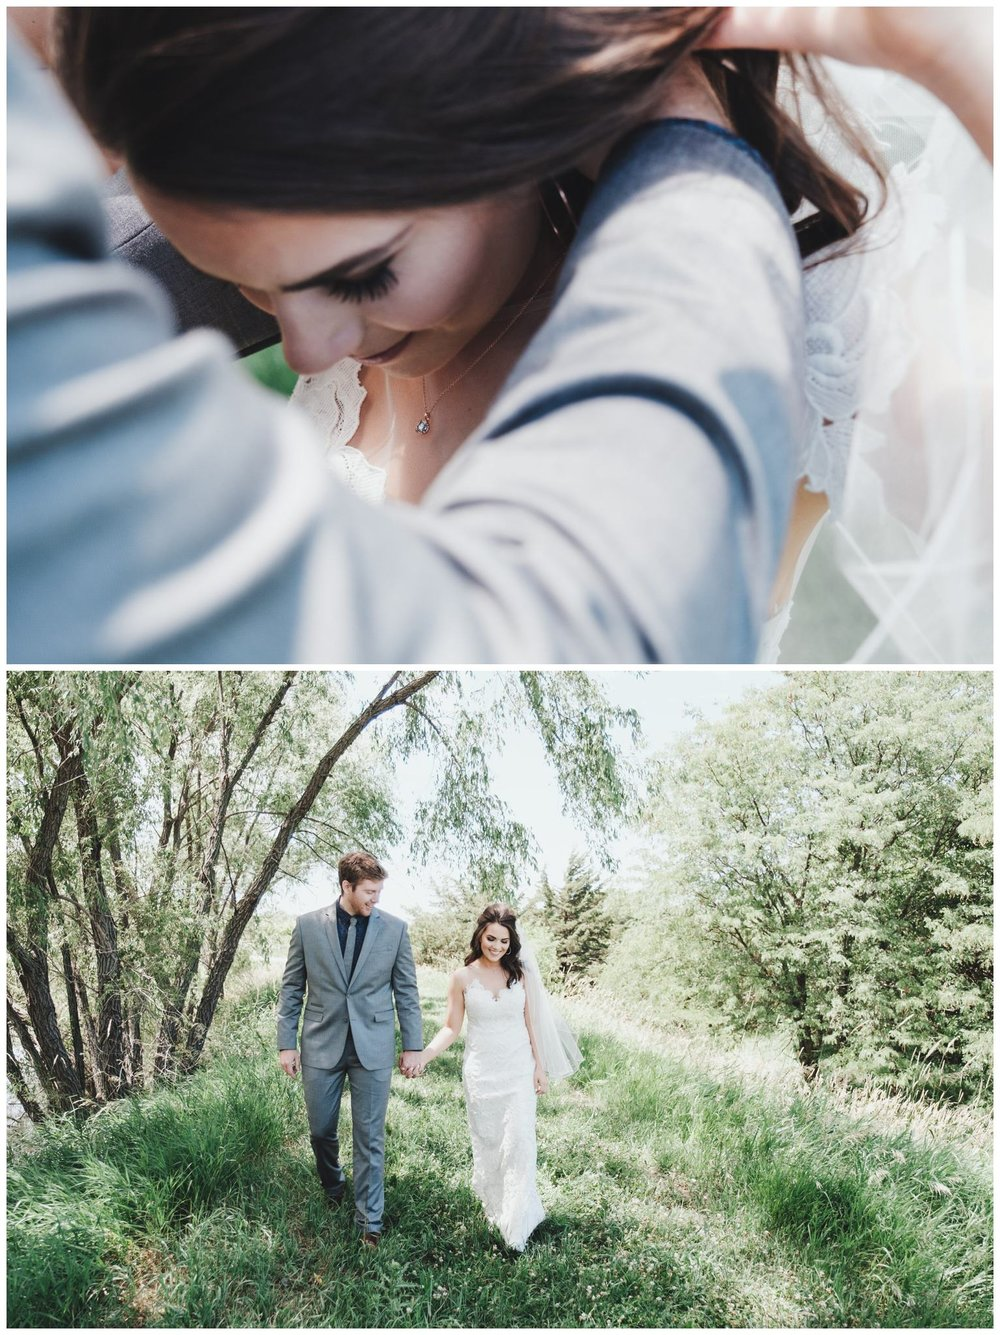 Wedding Photography Malorie and BJ at Glacial Till